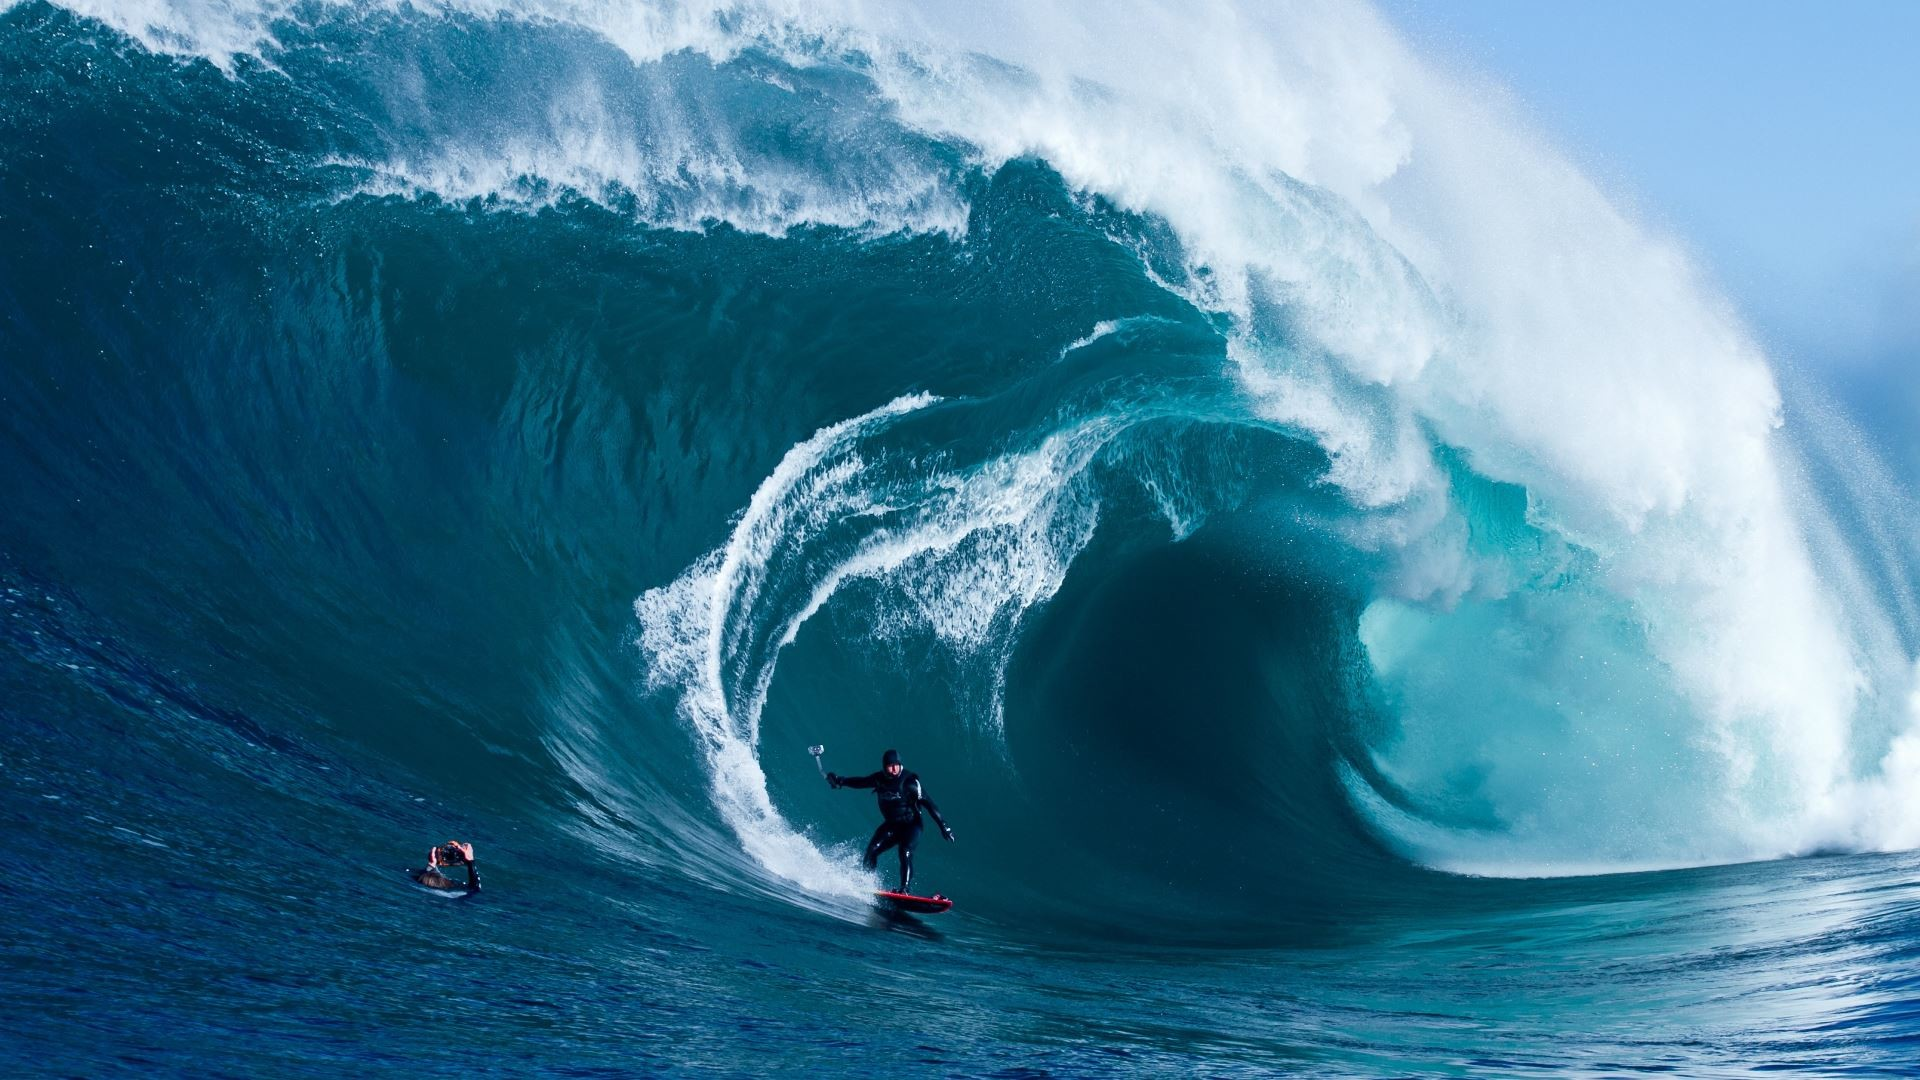 Very extreme surfing, huge waves – HD wallpaper download .